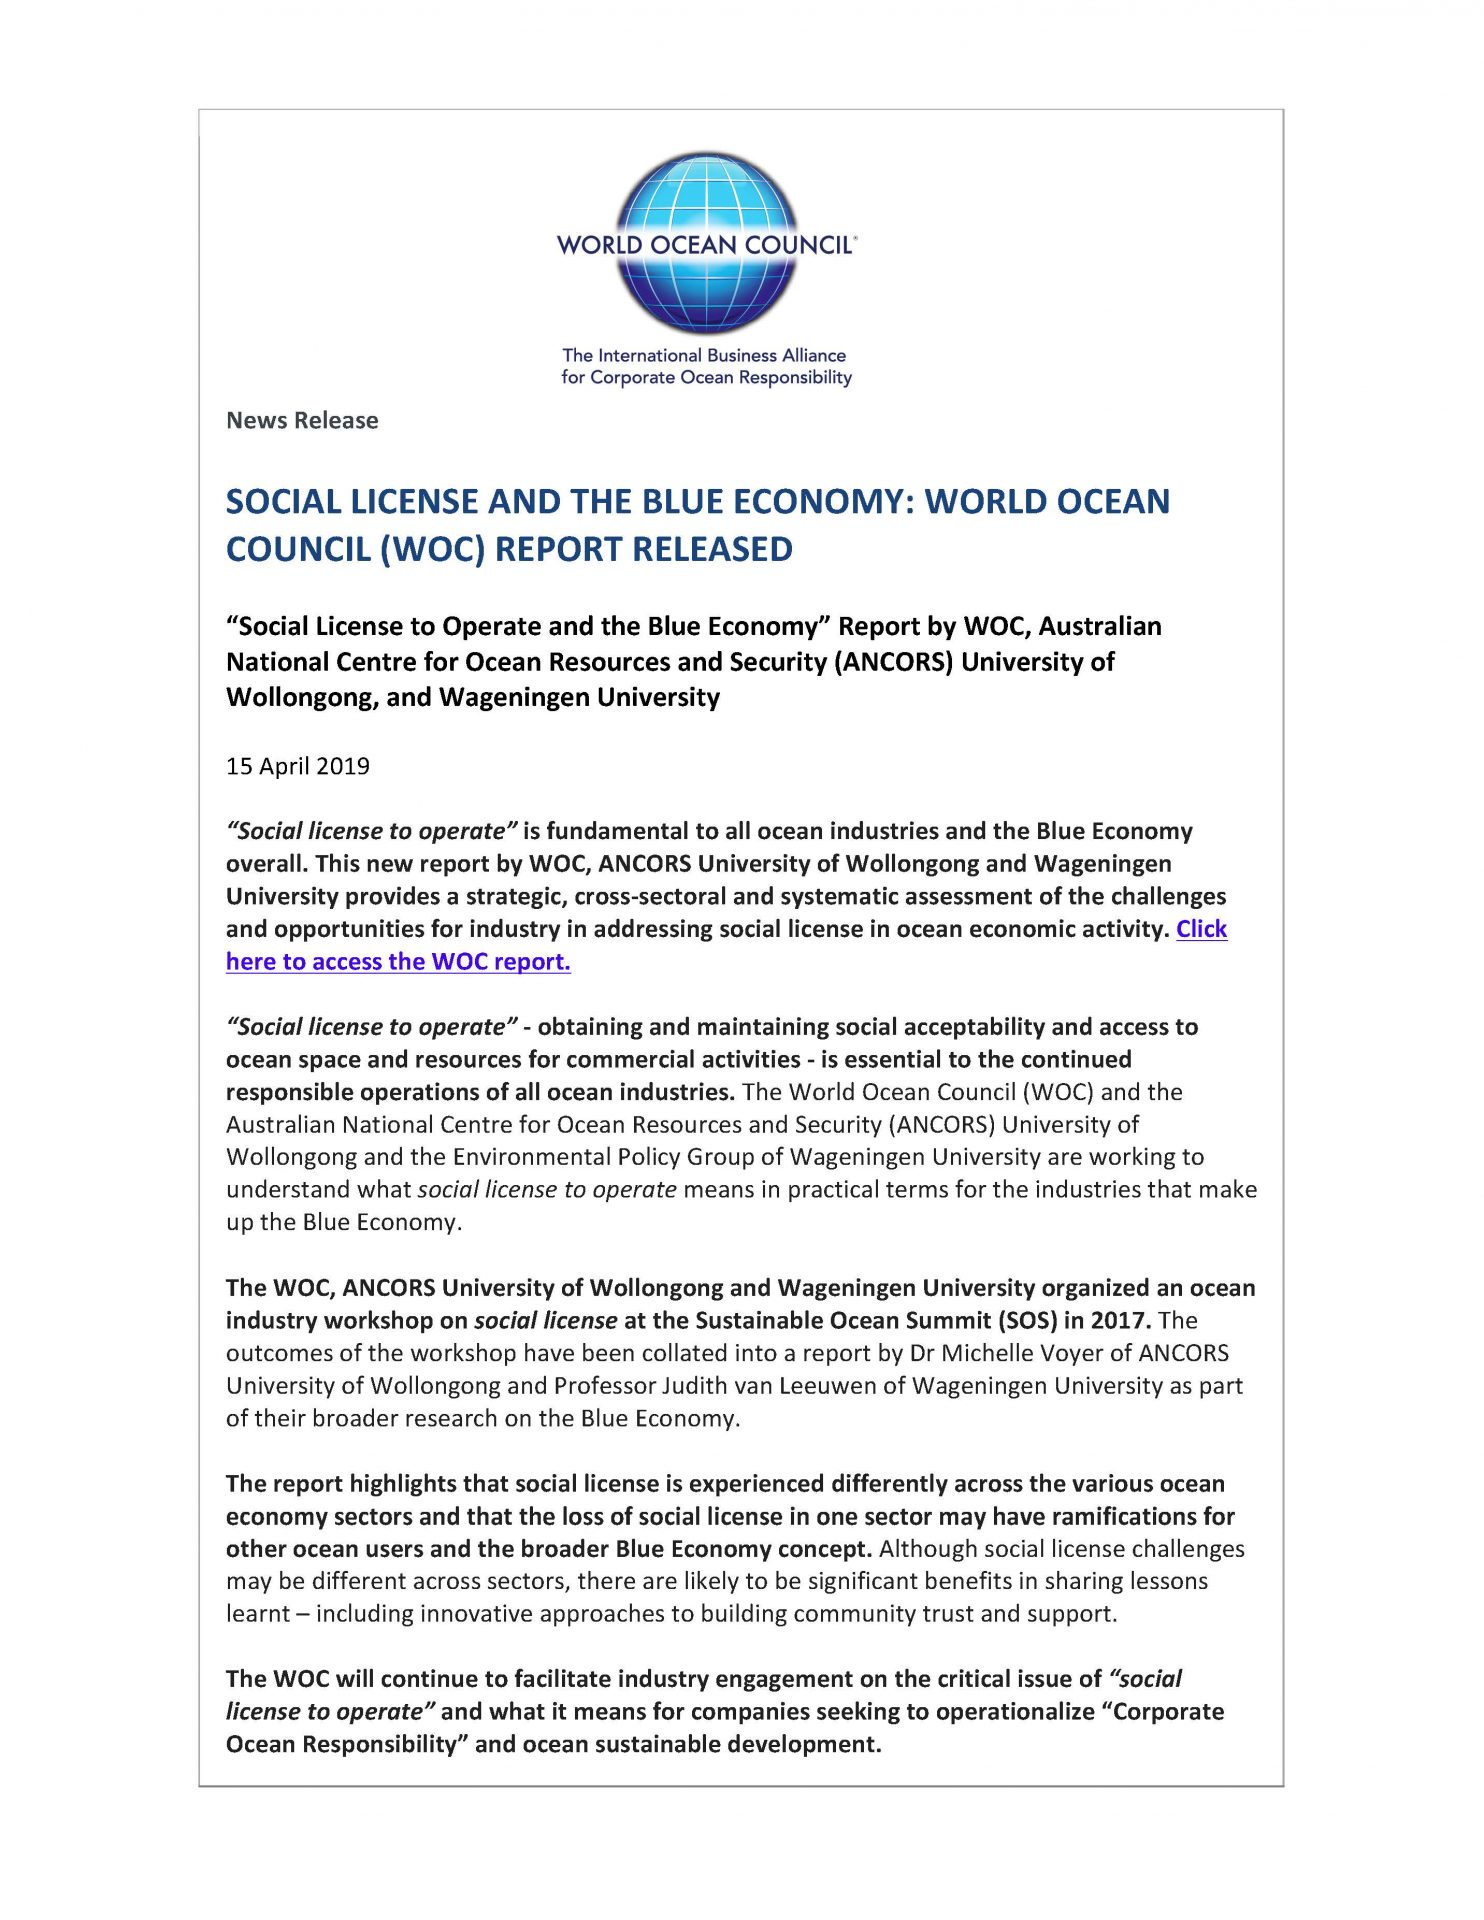 Social License and the Blue Economy: World Ocean Council (WOC) Report Released - 15 April 2019